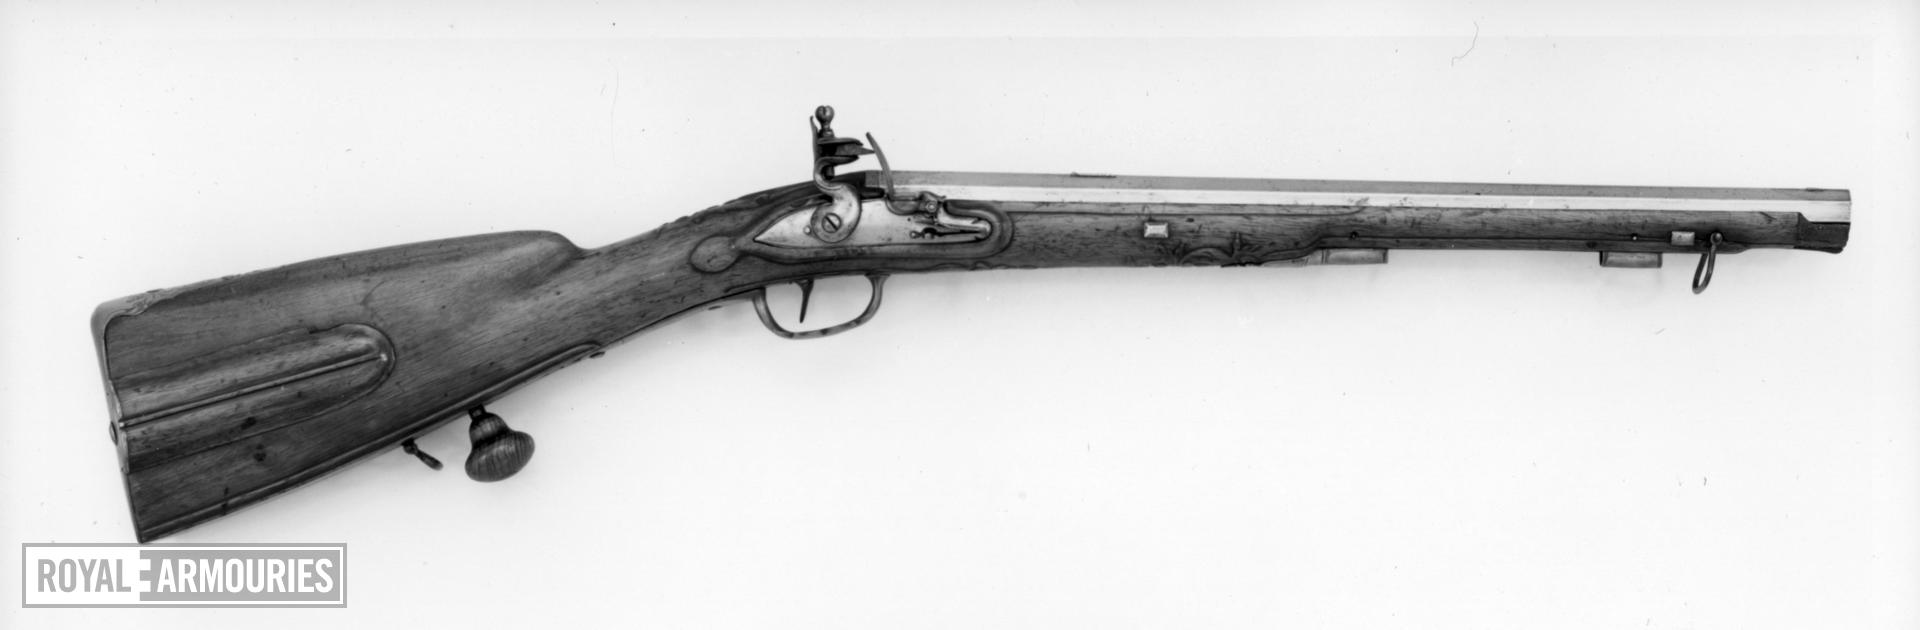 Flintlock muzzle-loading carbine - By I. Girarde A Porrentry